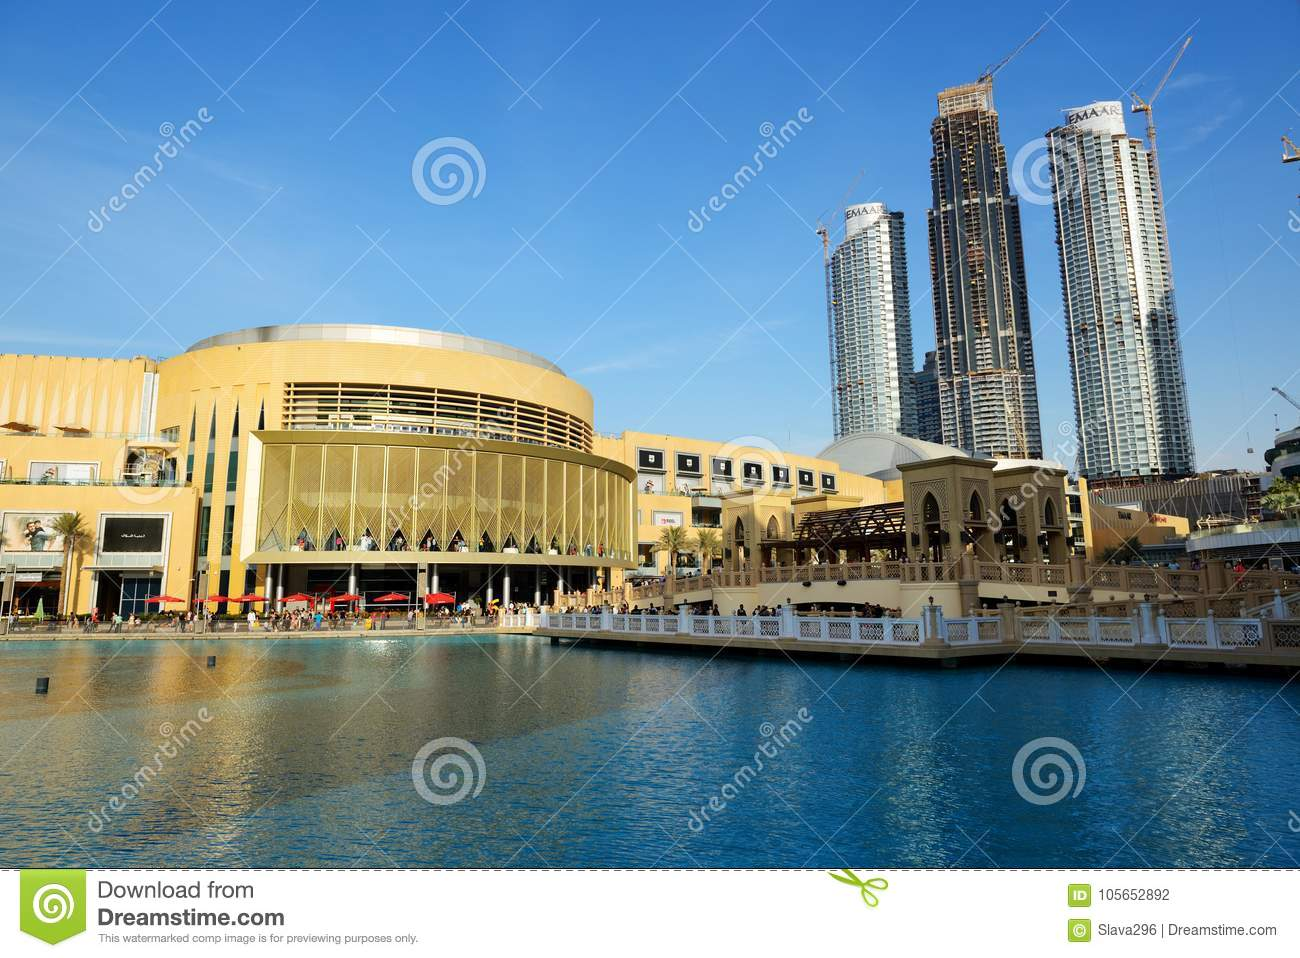 The Dubai Mall Is The World`s Largest Shopping Mall